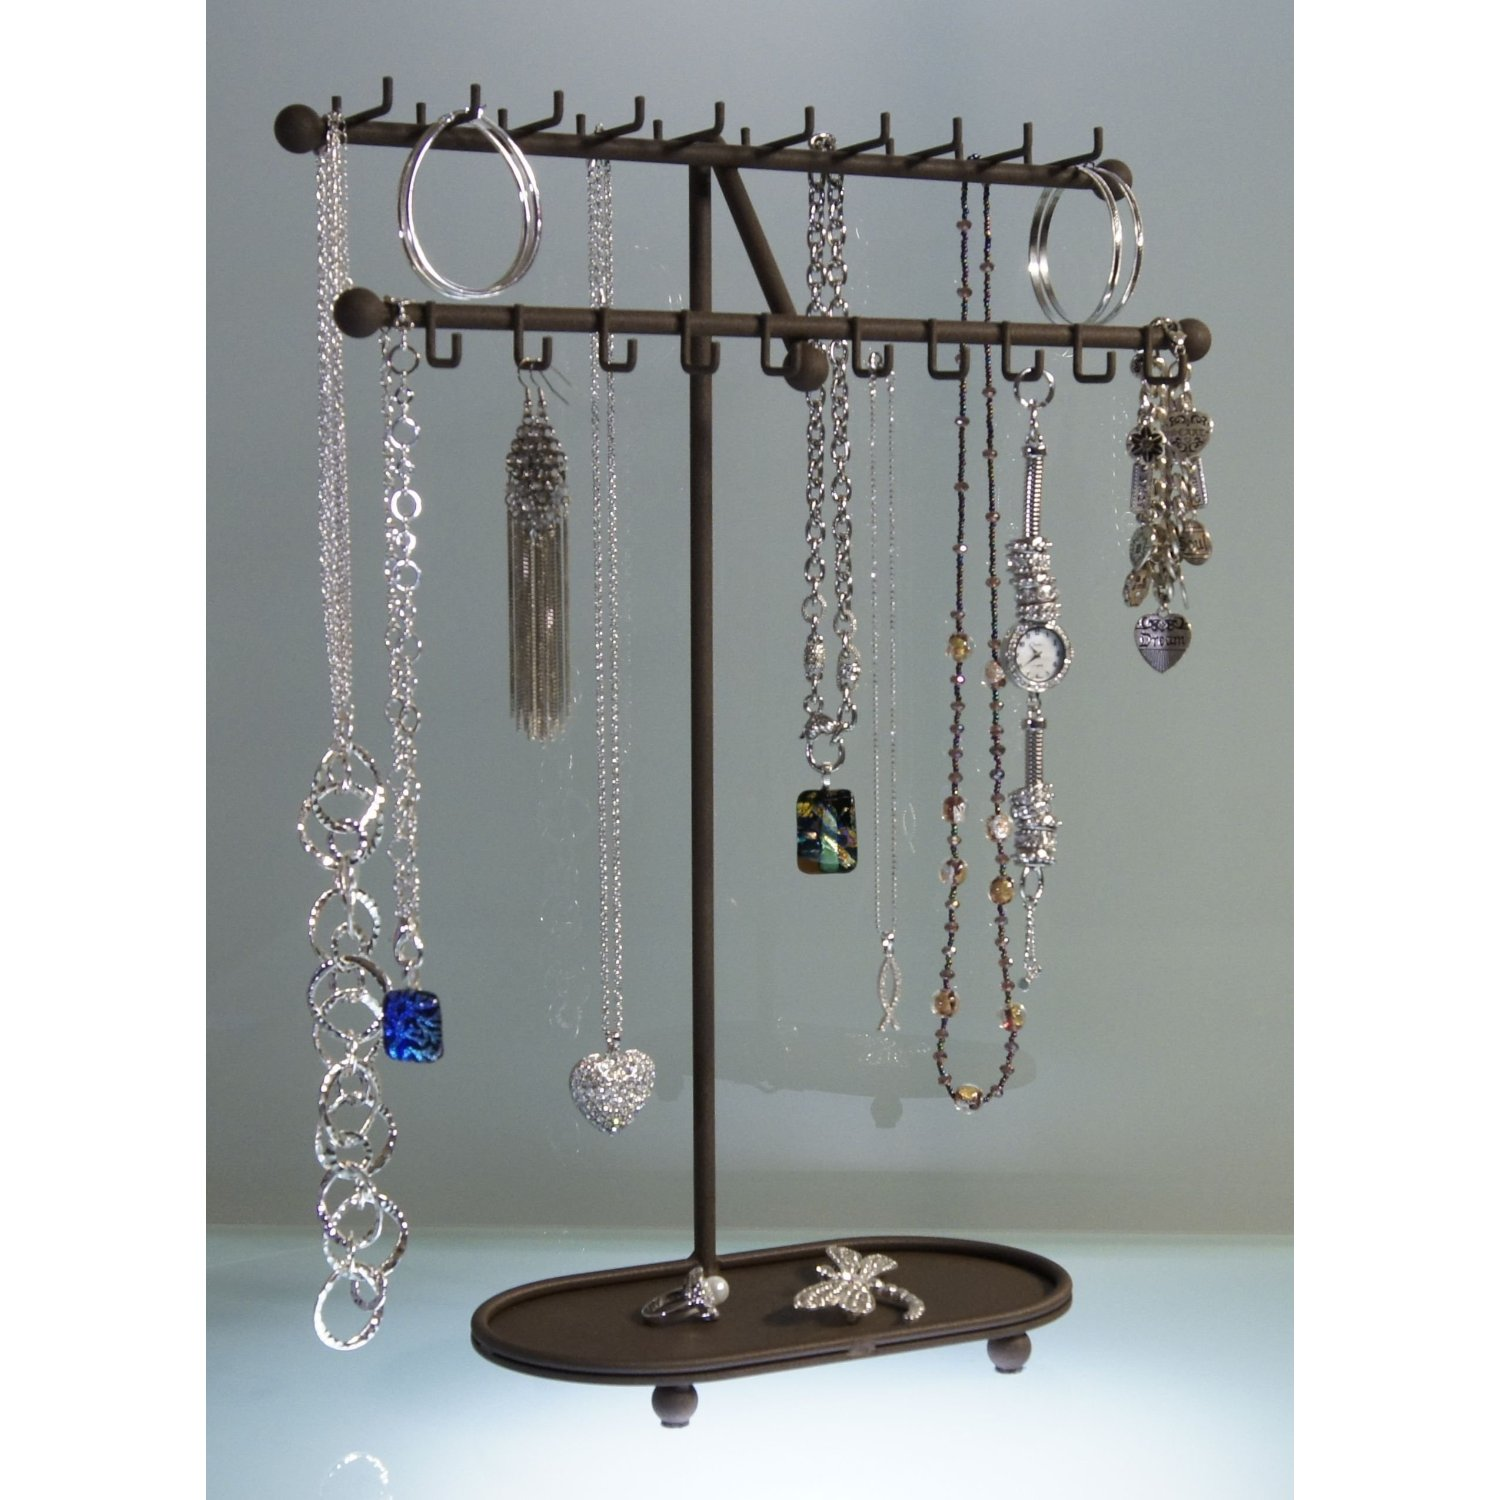 hanging jewelry organizer it has grown on me